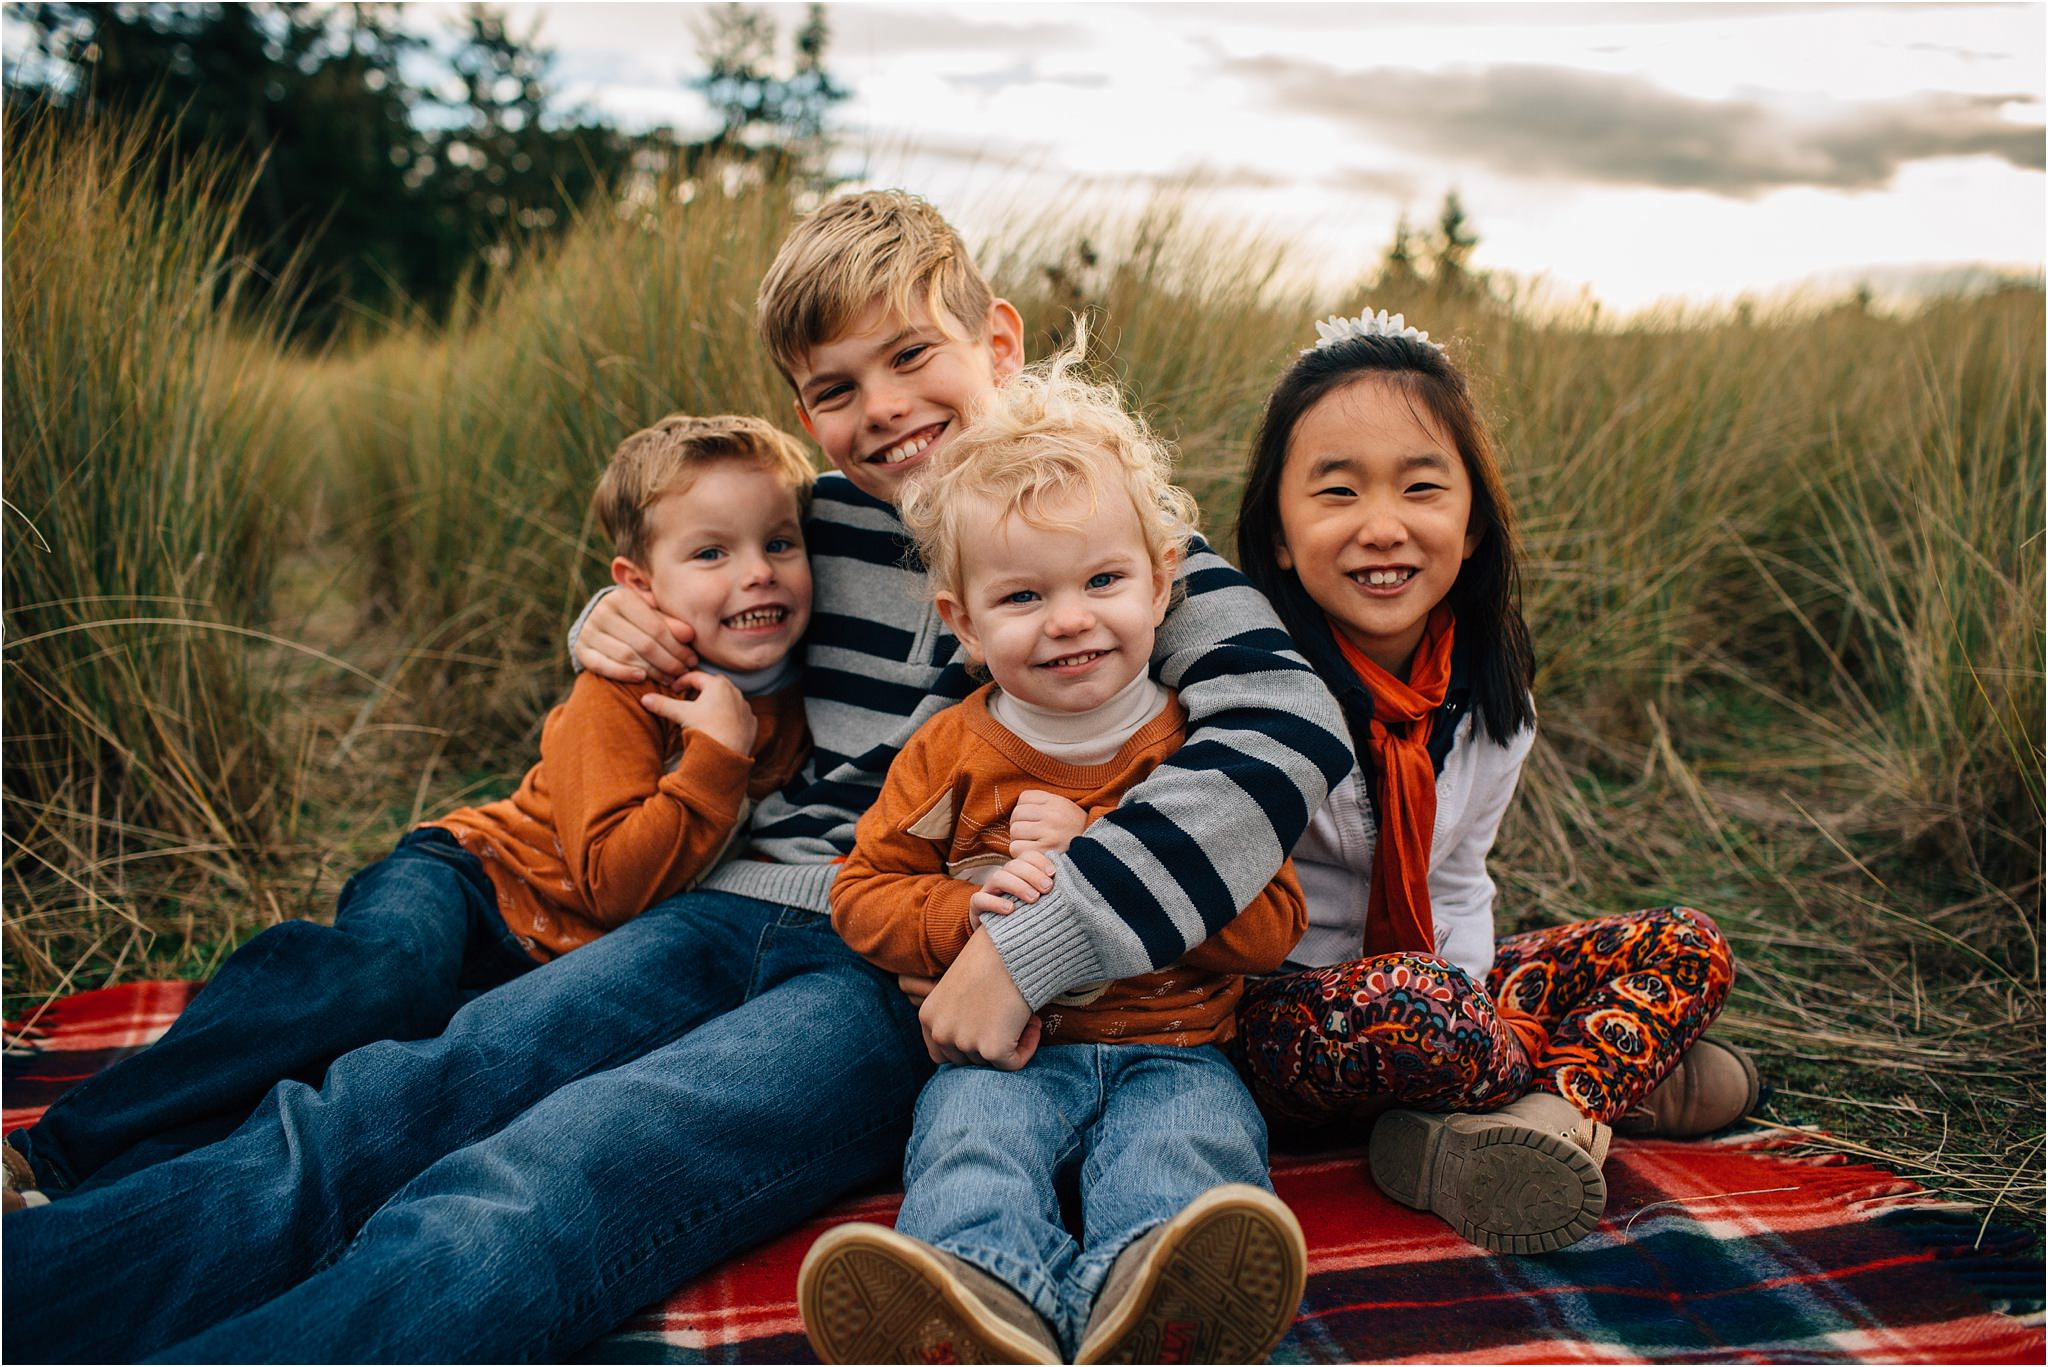 Whidbey-Island-Family-Photographer-Kara-Chappell-Photography_0012.jpg